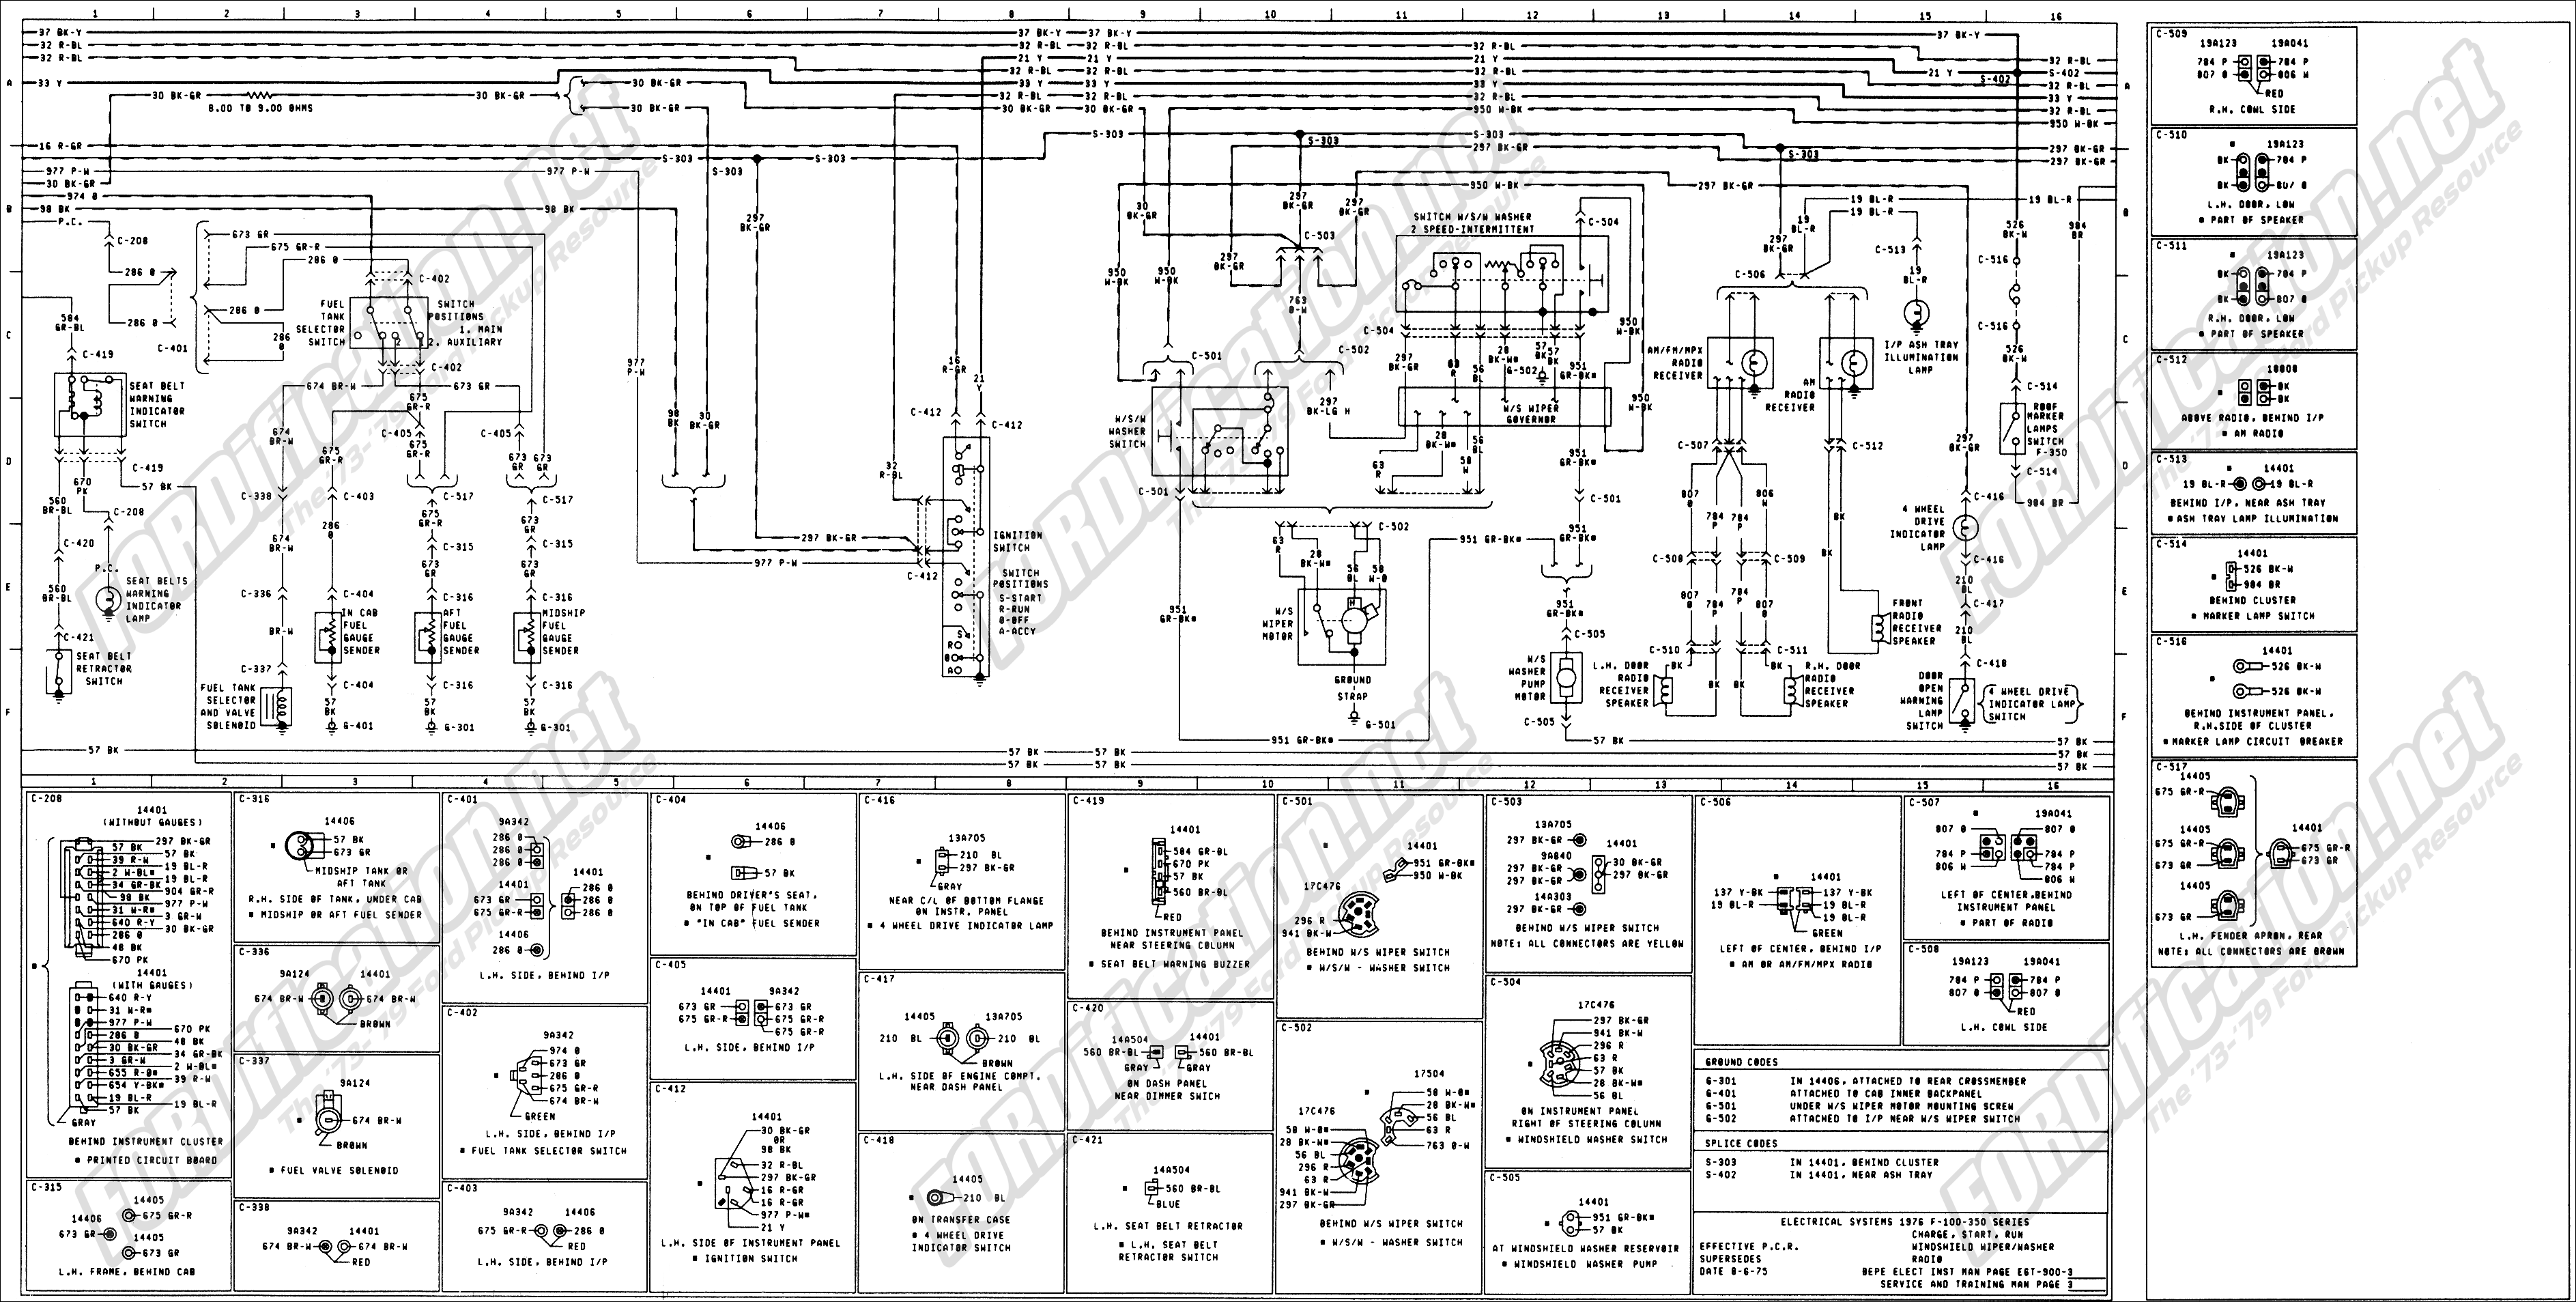 1999 Ford E150 Fuse Box Diagram moreover Gfci Plug Wiring further 1213186 as well 2007 610 Mule Wiring Diagram besides 30a 125 250v Locking Plug Wiring Diagram. on wiring diagram for 250 volt plug